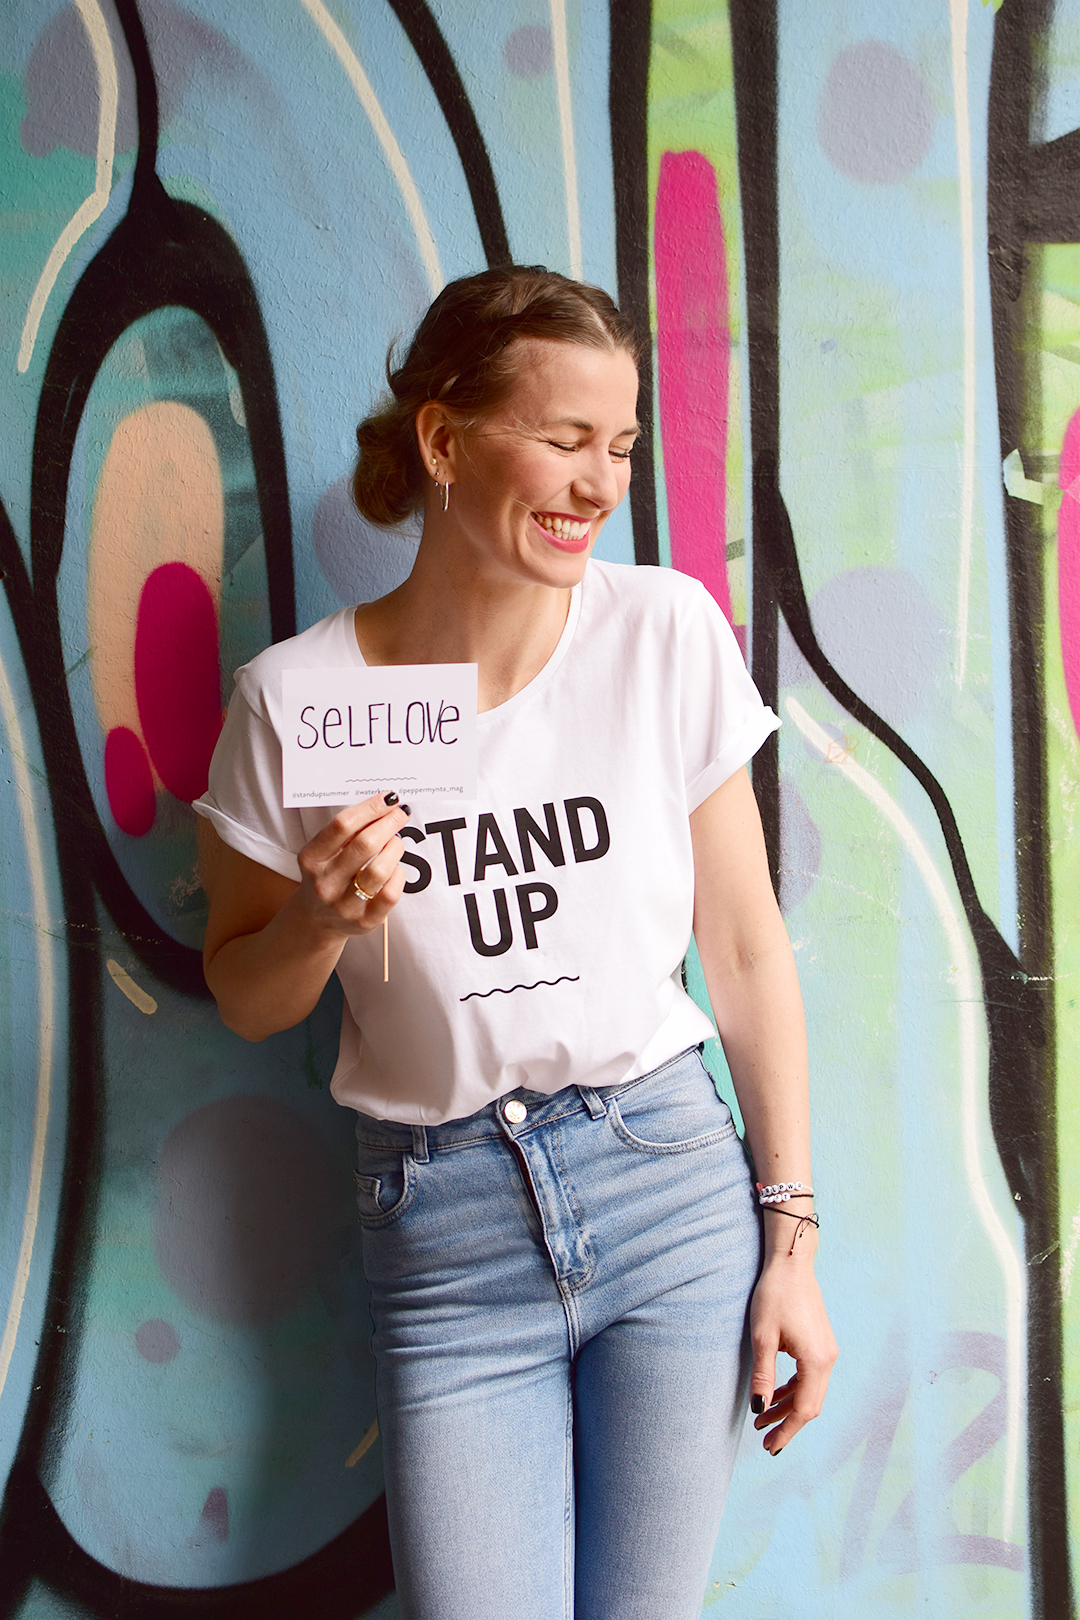 STAND UP Statement T-Shirt Story Selflove Selbstliebe Peppermynta Waterkoog Kollaboration Summer 2017